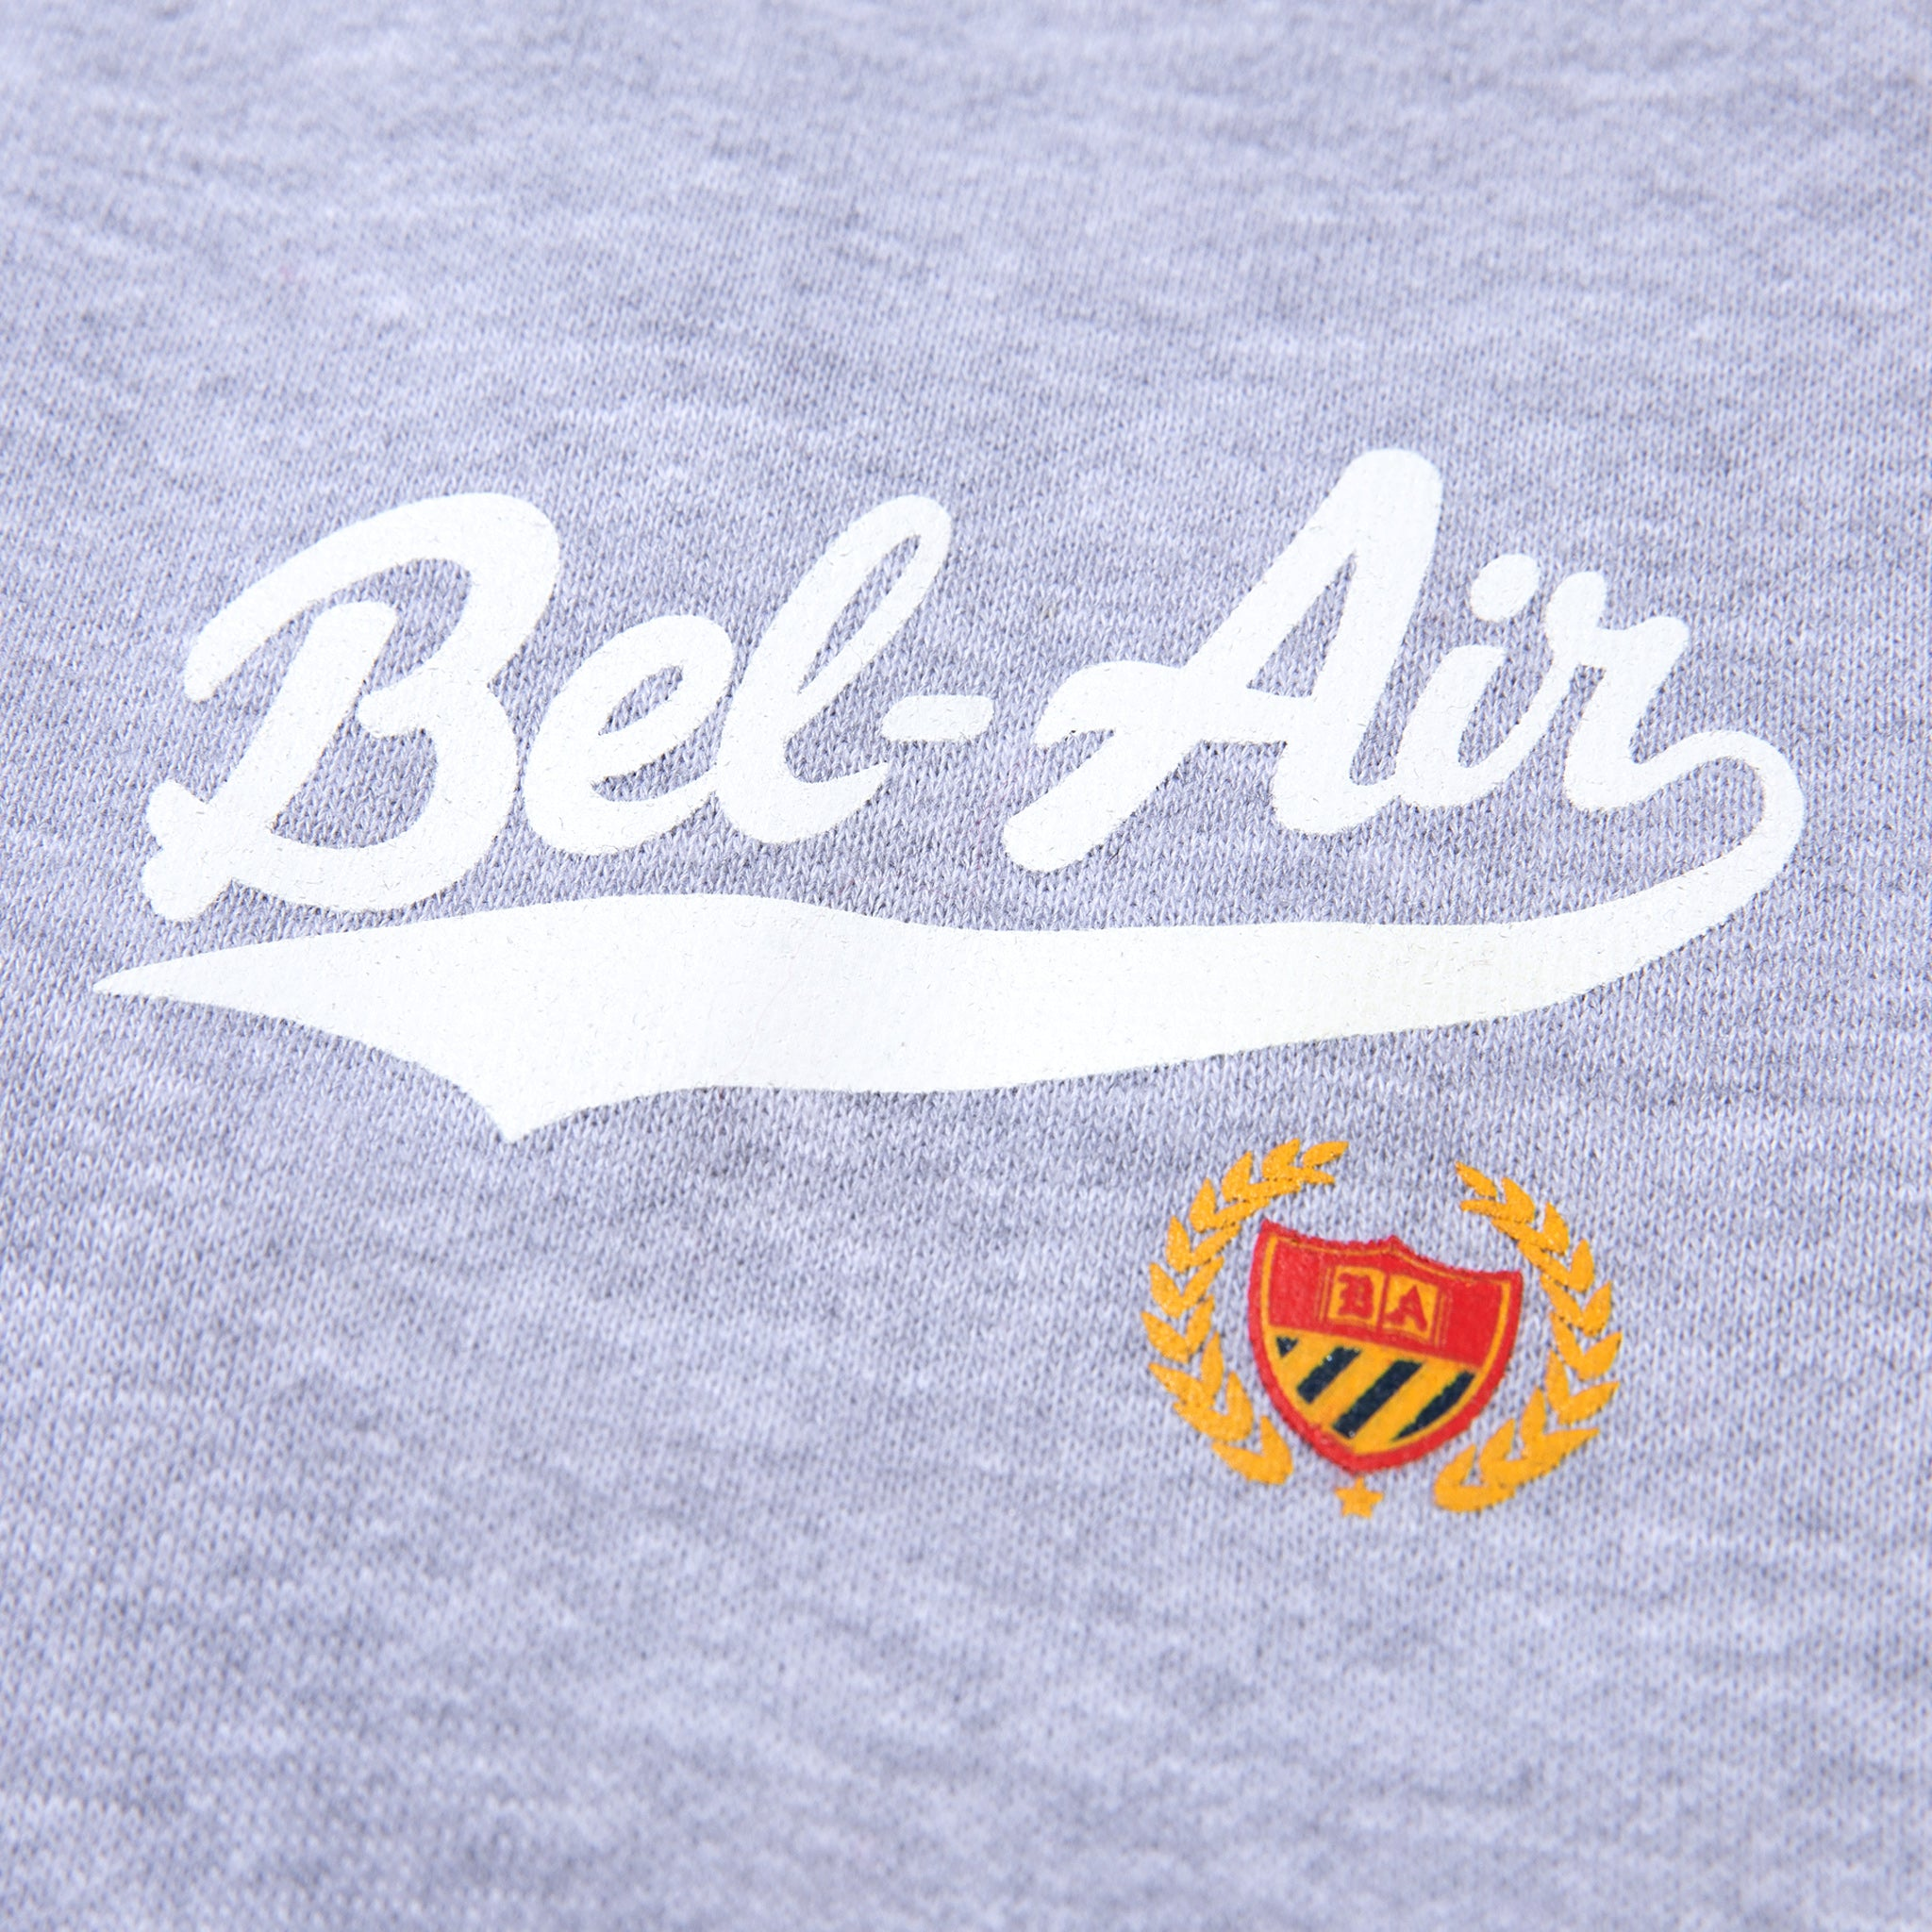 Bel Air Script Sweatpants Heather Grey Image  #2